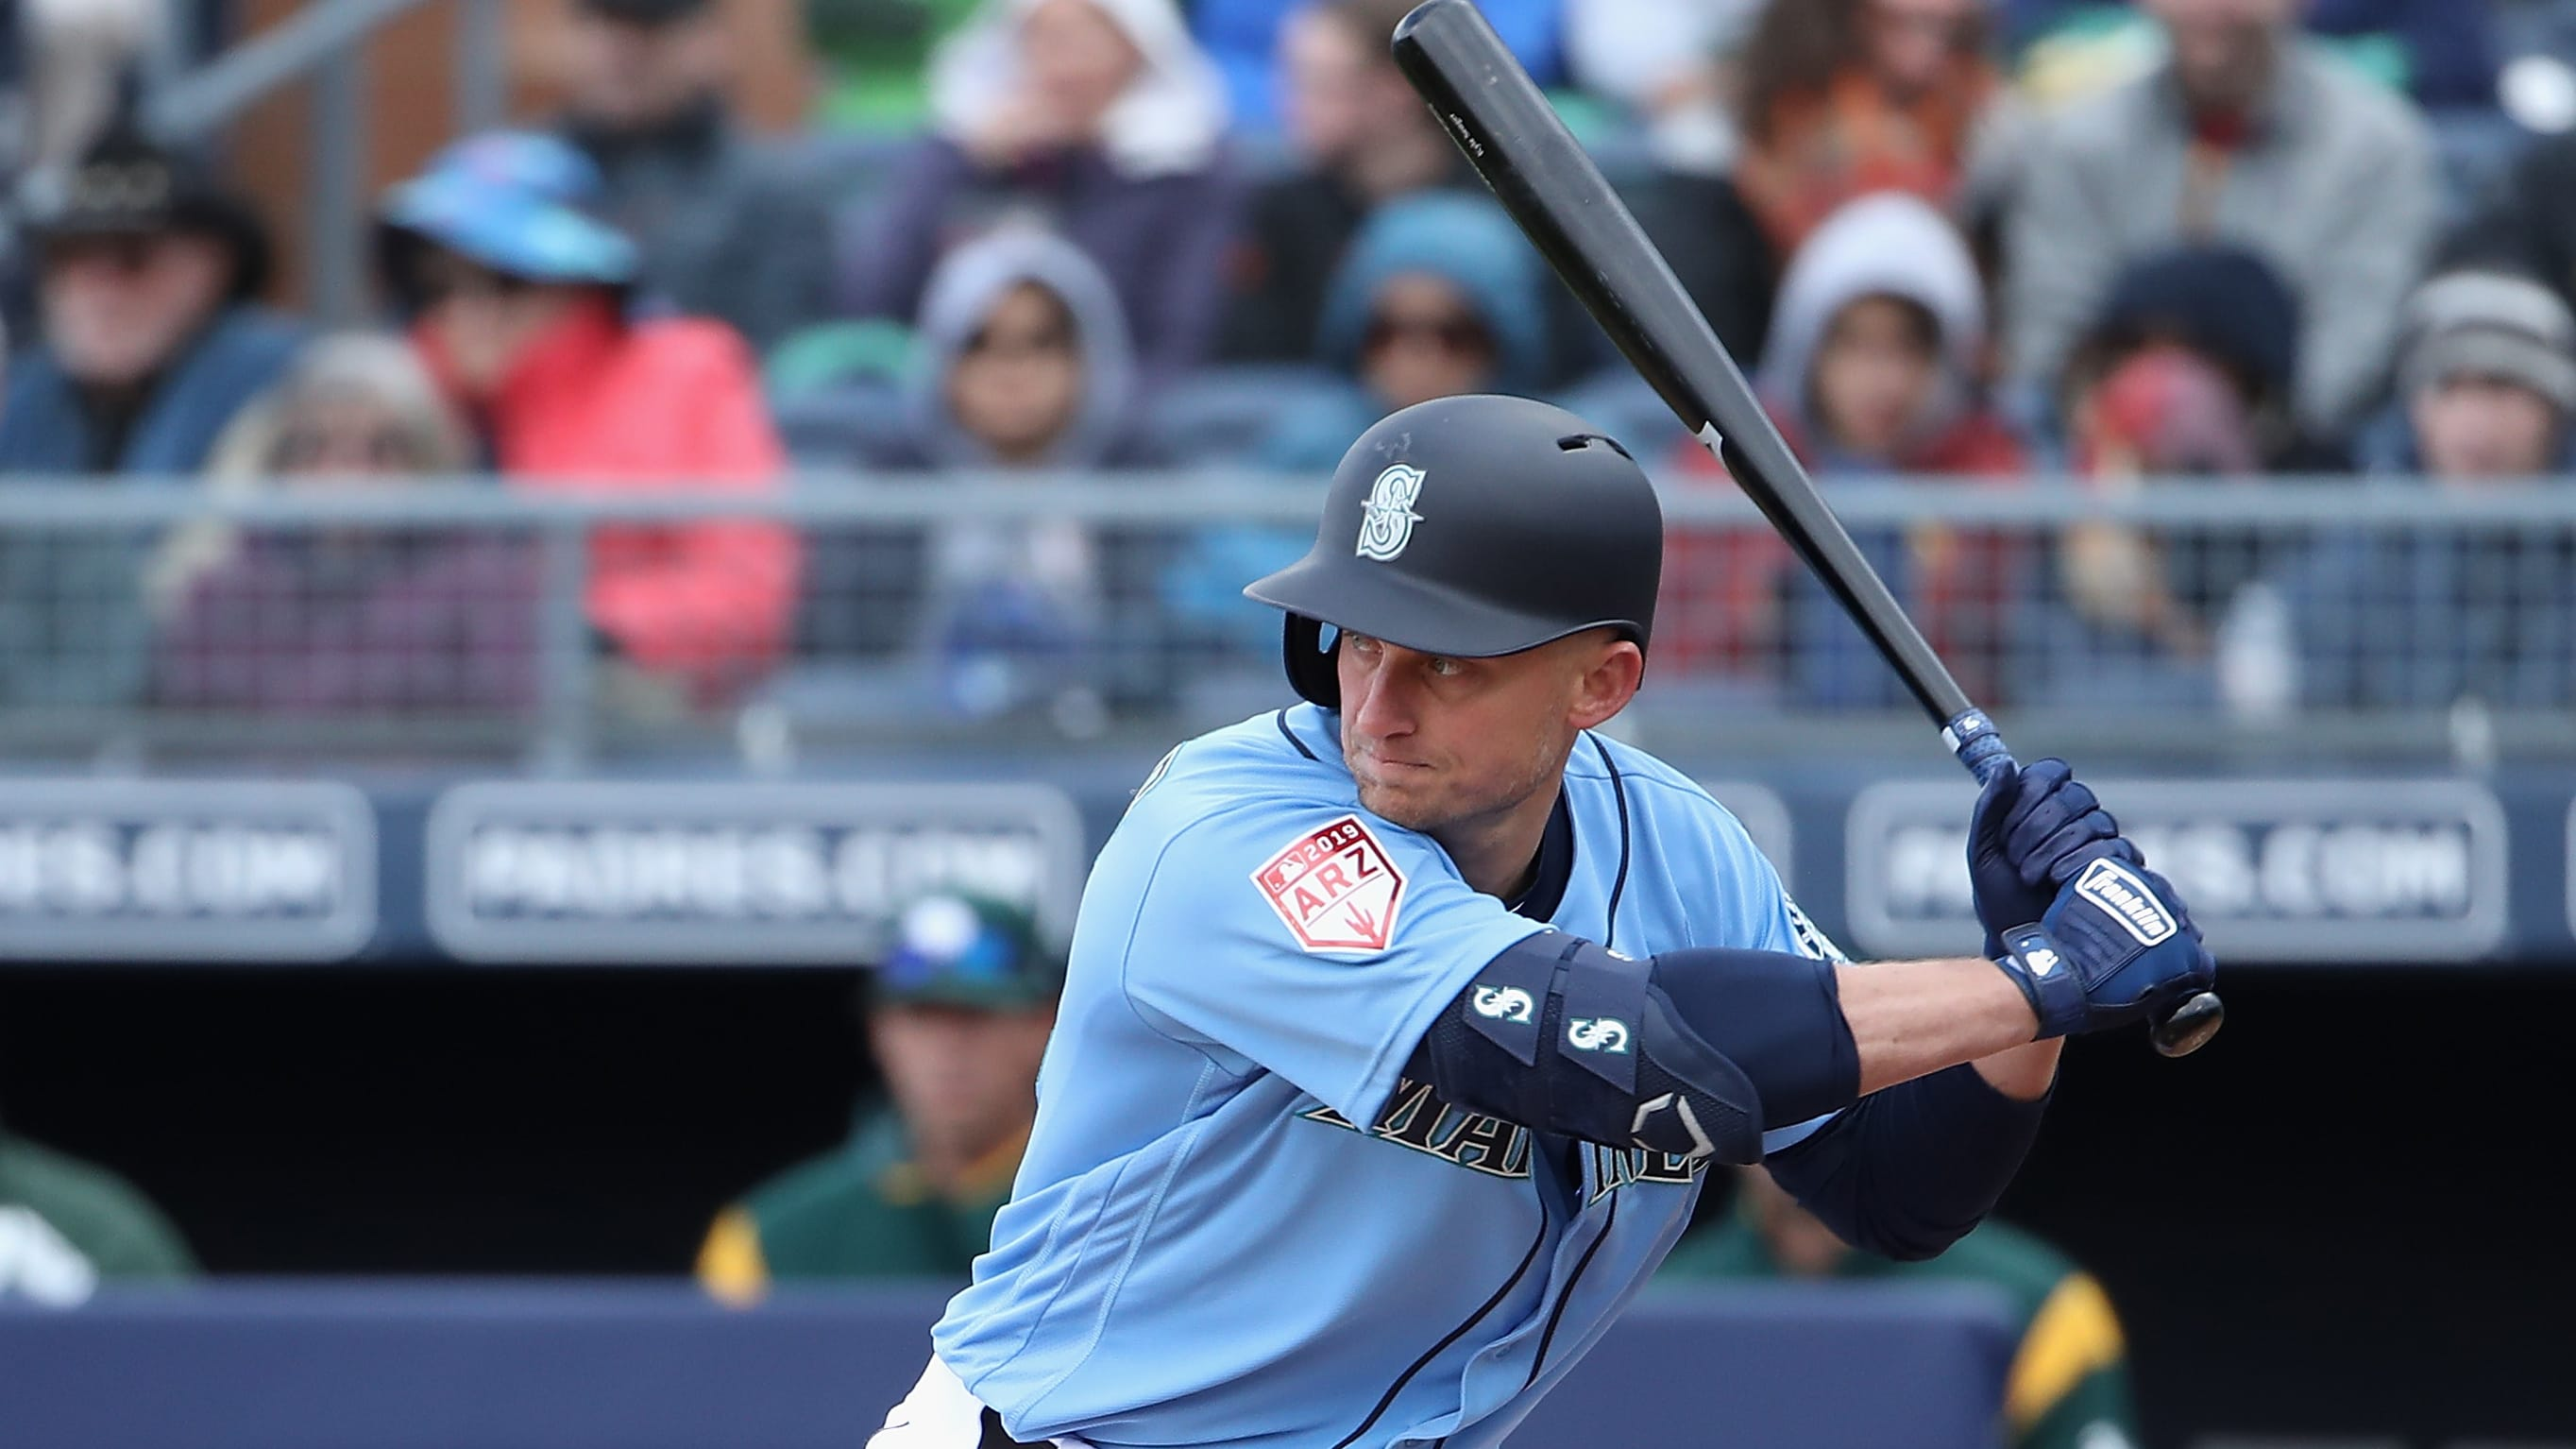 PEORIA, ARIZONA - FEBRUARY 22:  Kyle Seager #15 of the Seattle Mariners bats against the Oakland Athletics during the MLB spring training game at Peoria Stadium on February 22, 2019 in Peoria, Arizona. (Photo by Christian Petersen/Getty Images)